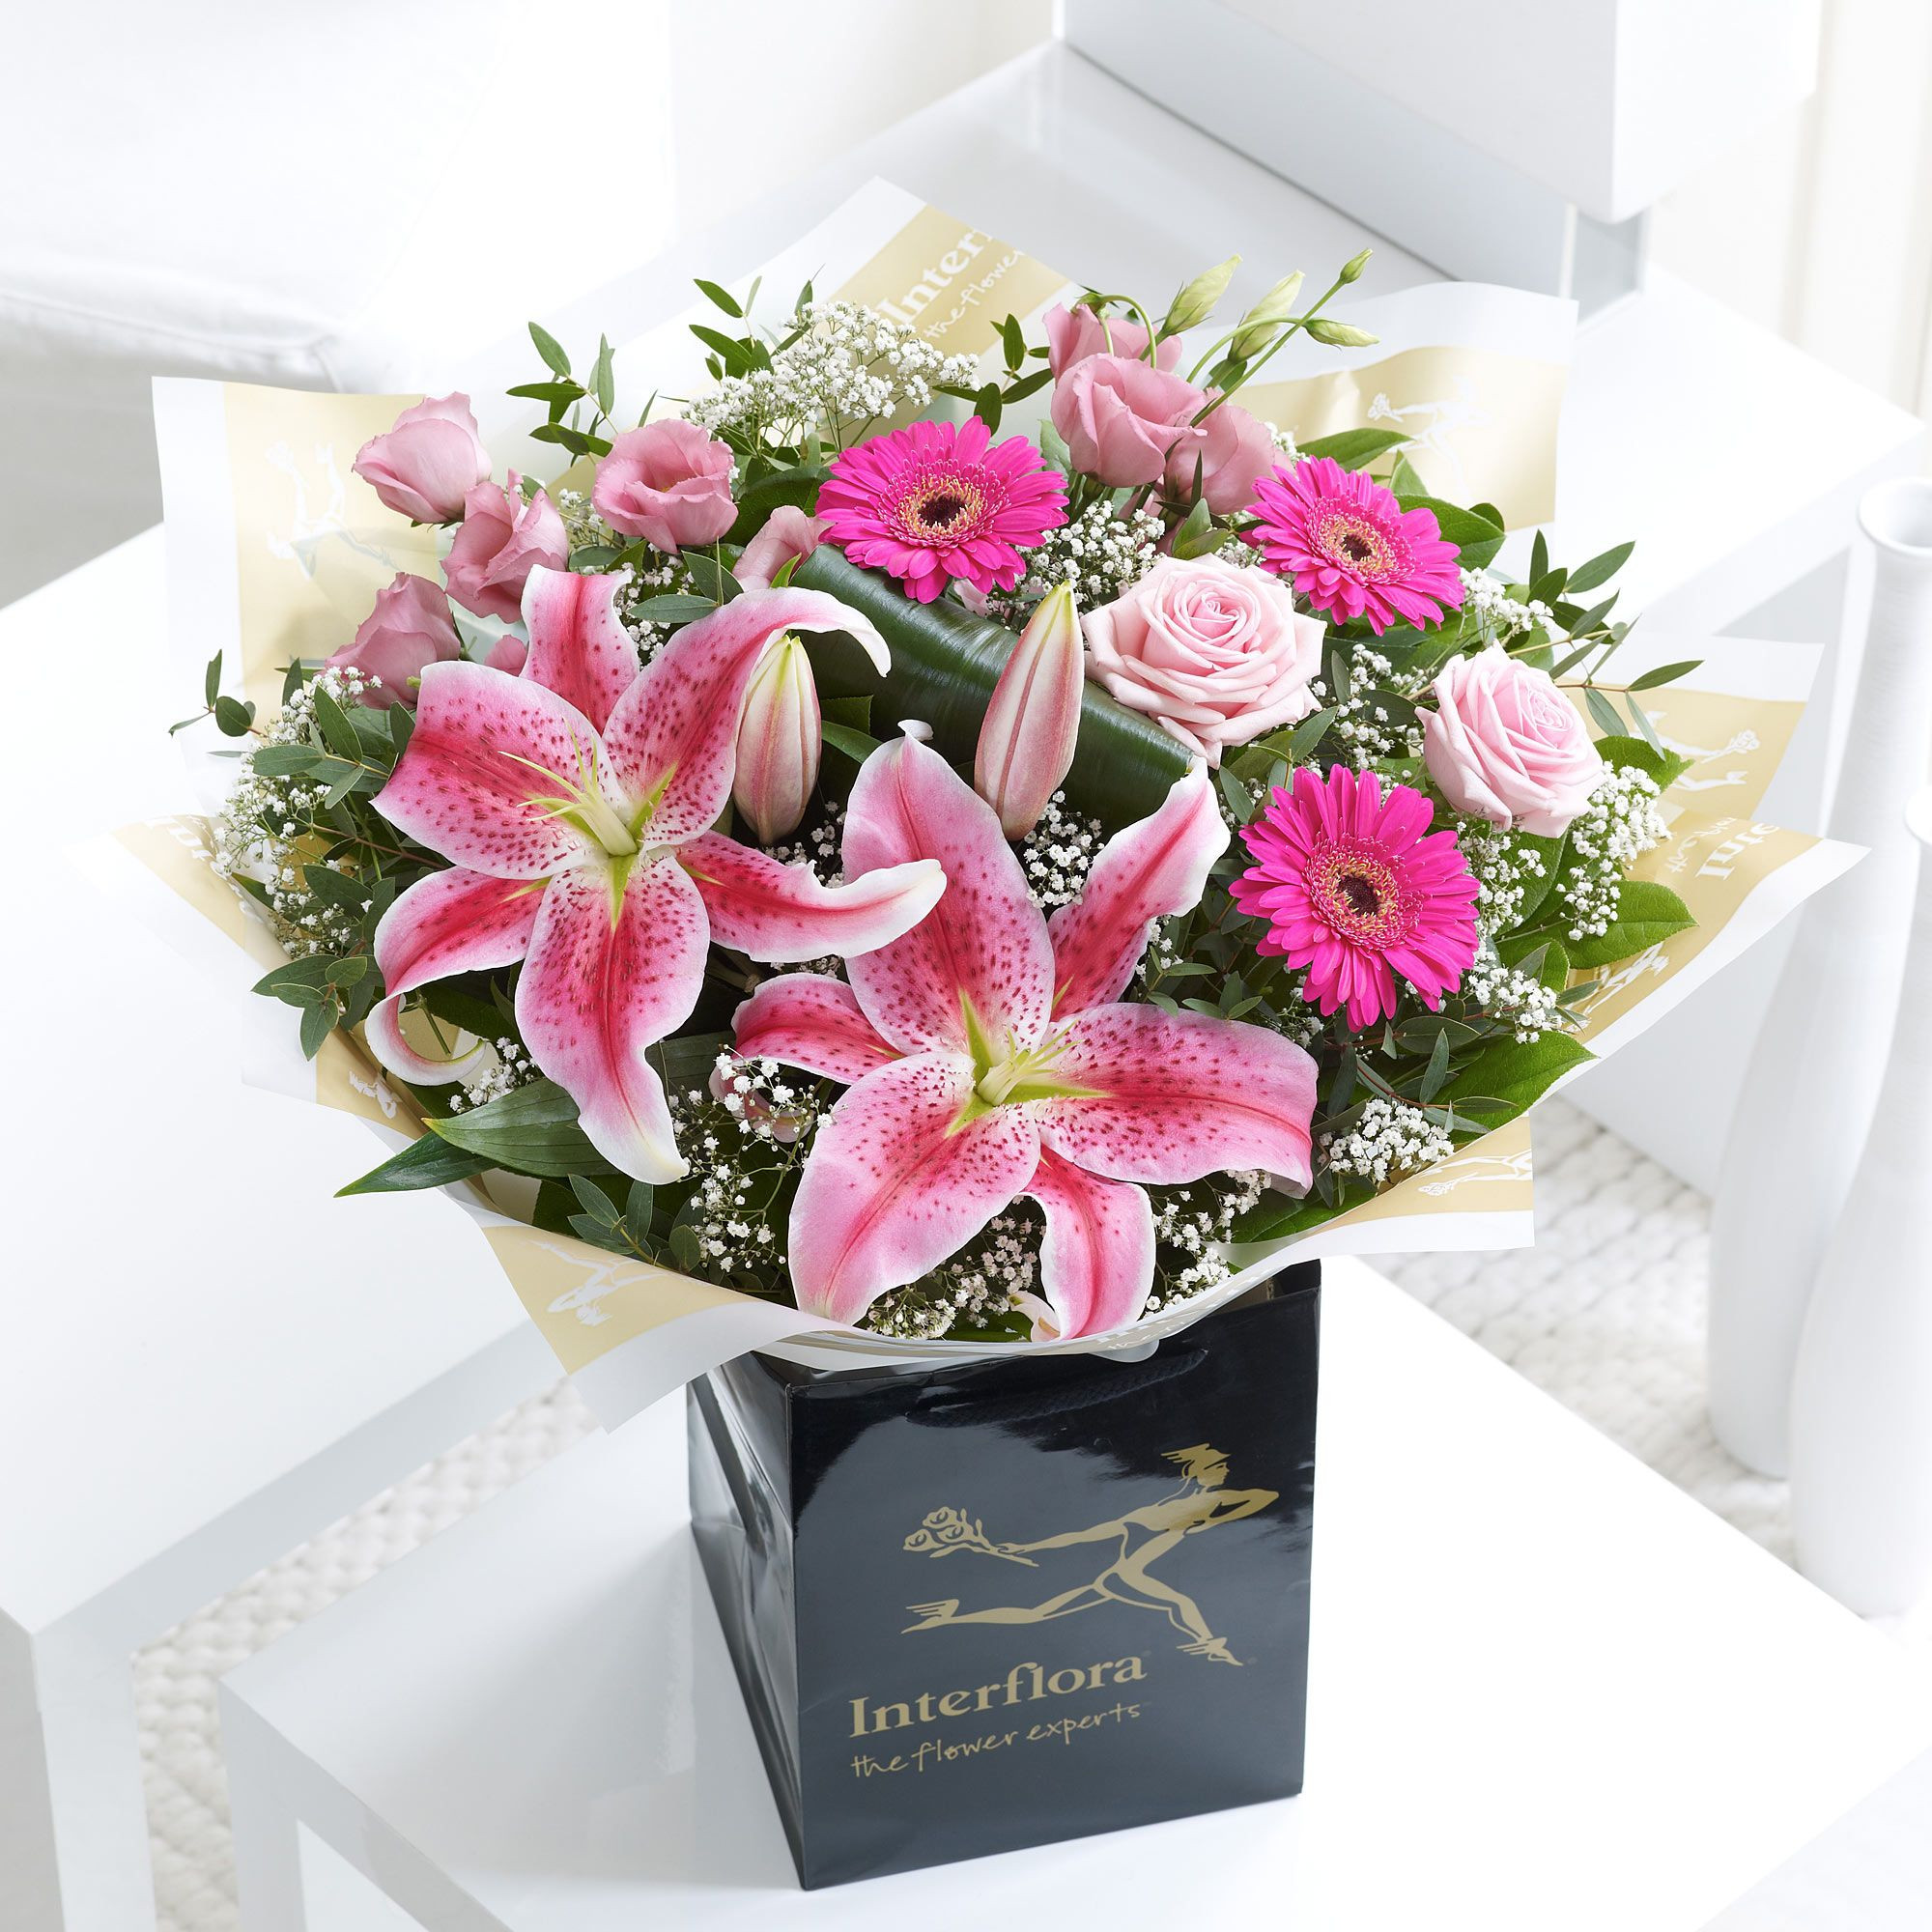 Same Day Flower Delivery Dublin Lovely the Pink oriental Lilies In This Arrangement are Very Eye Catching